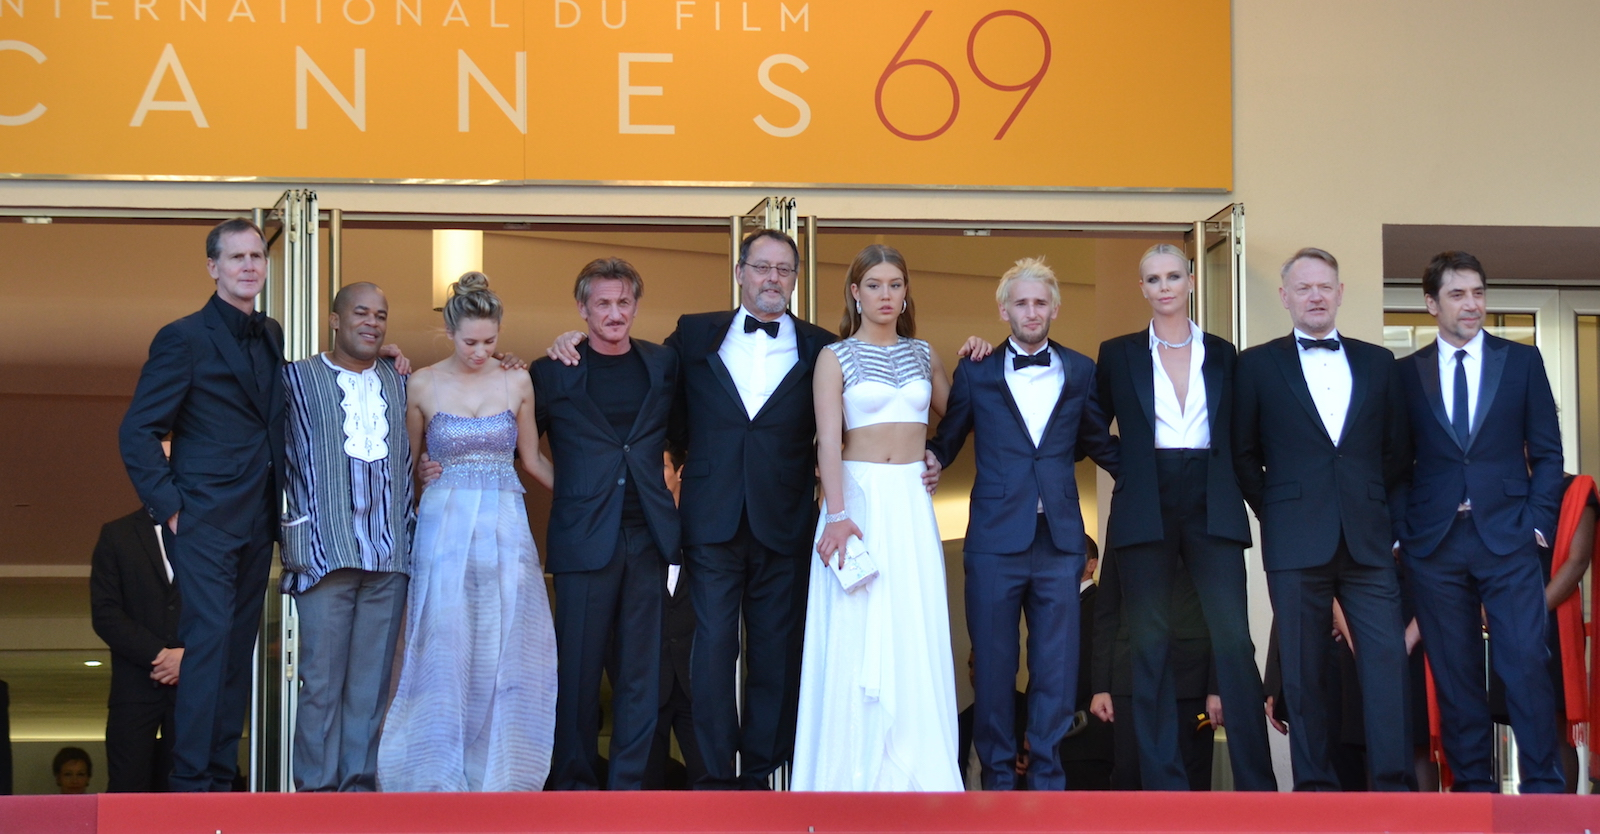 Cannes 2016: Sean Penn, Jean Reno, Jared Harris Charlize Theron, Javier Bardem, Adèle Exarchopoulos sul red carpet di The last Face